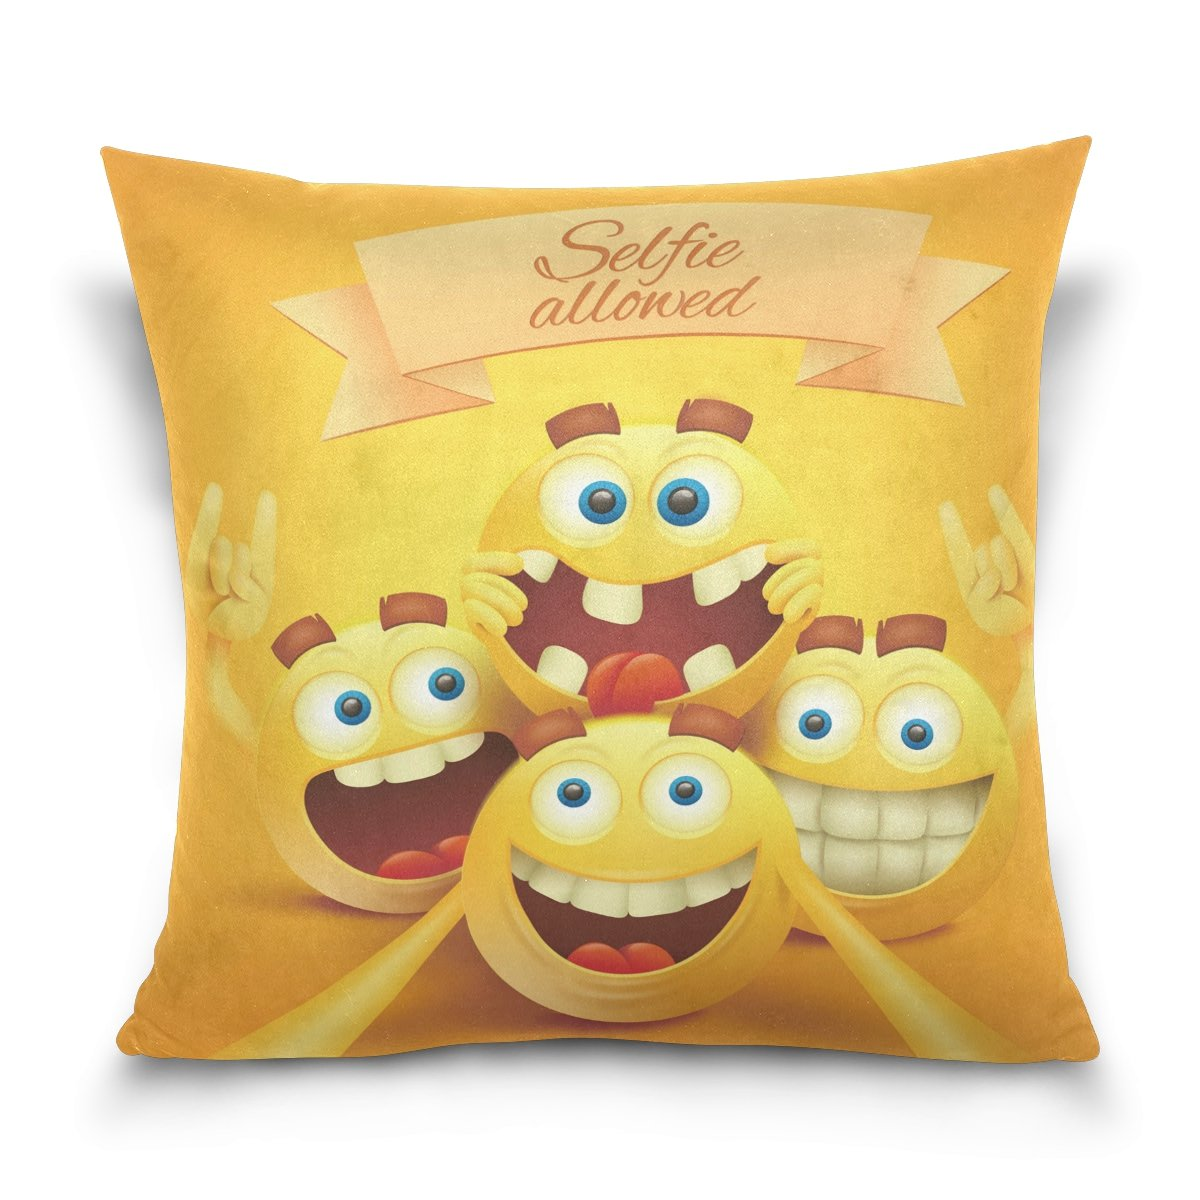 ALAZA Funny Emoji Cotton Pillowcase 20 X 20 Inches Twin Sides, Smiley Emoji Faces Pillow Case Sham Cover Protector Decorative for Home Hotel Couch Ded